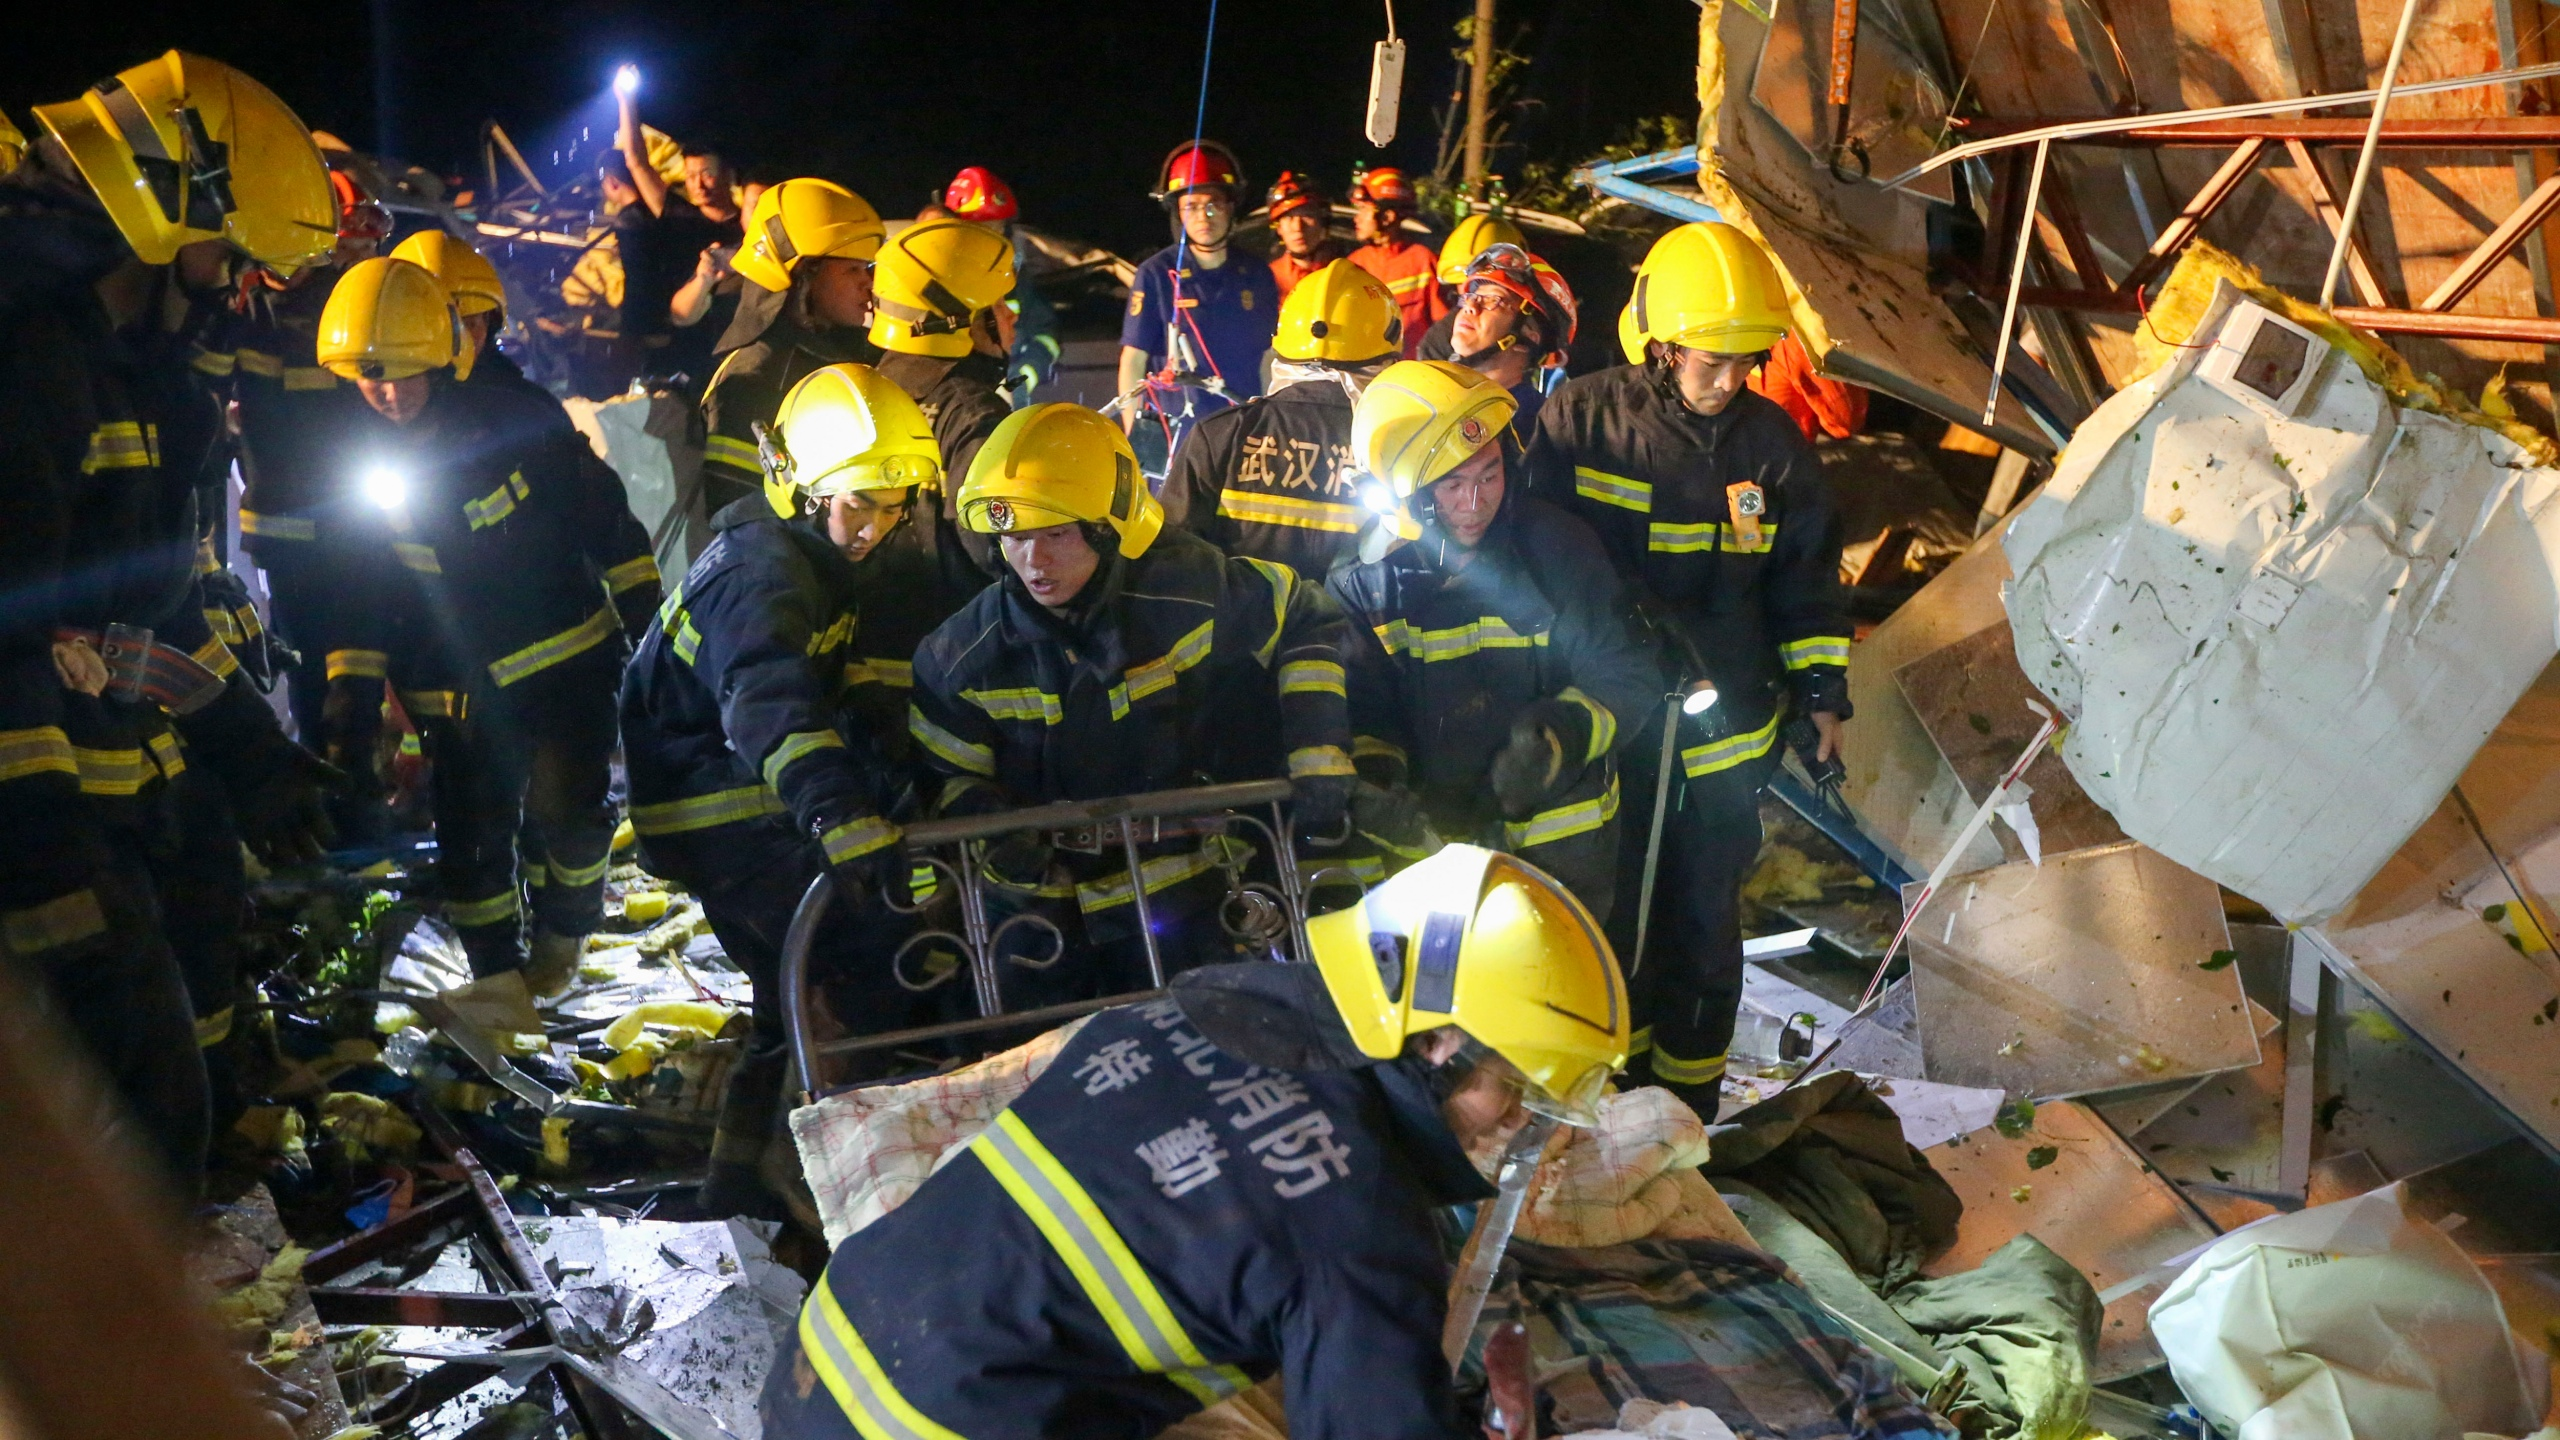 In this photo released by China's Xinhua News Agency, emergency personnel search through the wreckage of buildings destroyed by a reported tornado in Wuhan in central China's Hubei Province, early Saturday, May 15, 2021. Two tornadoes killed several people in central and eastern China and left hundreds of others injured, officials and state media reported Saturday. (Xiong Qi/Xinhua via AP)